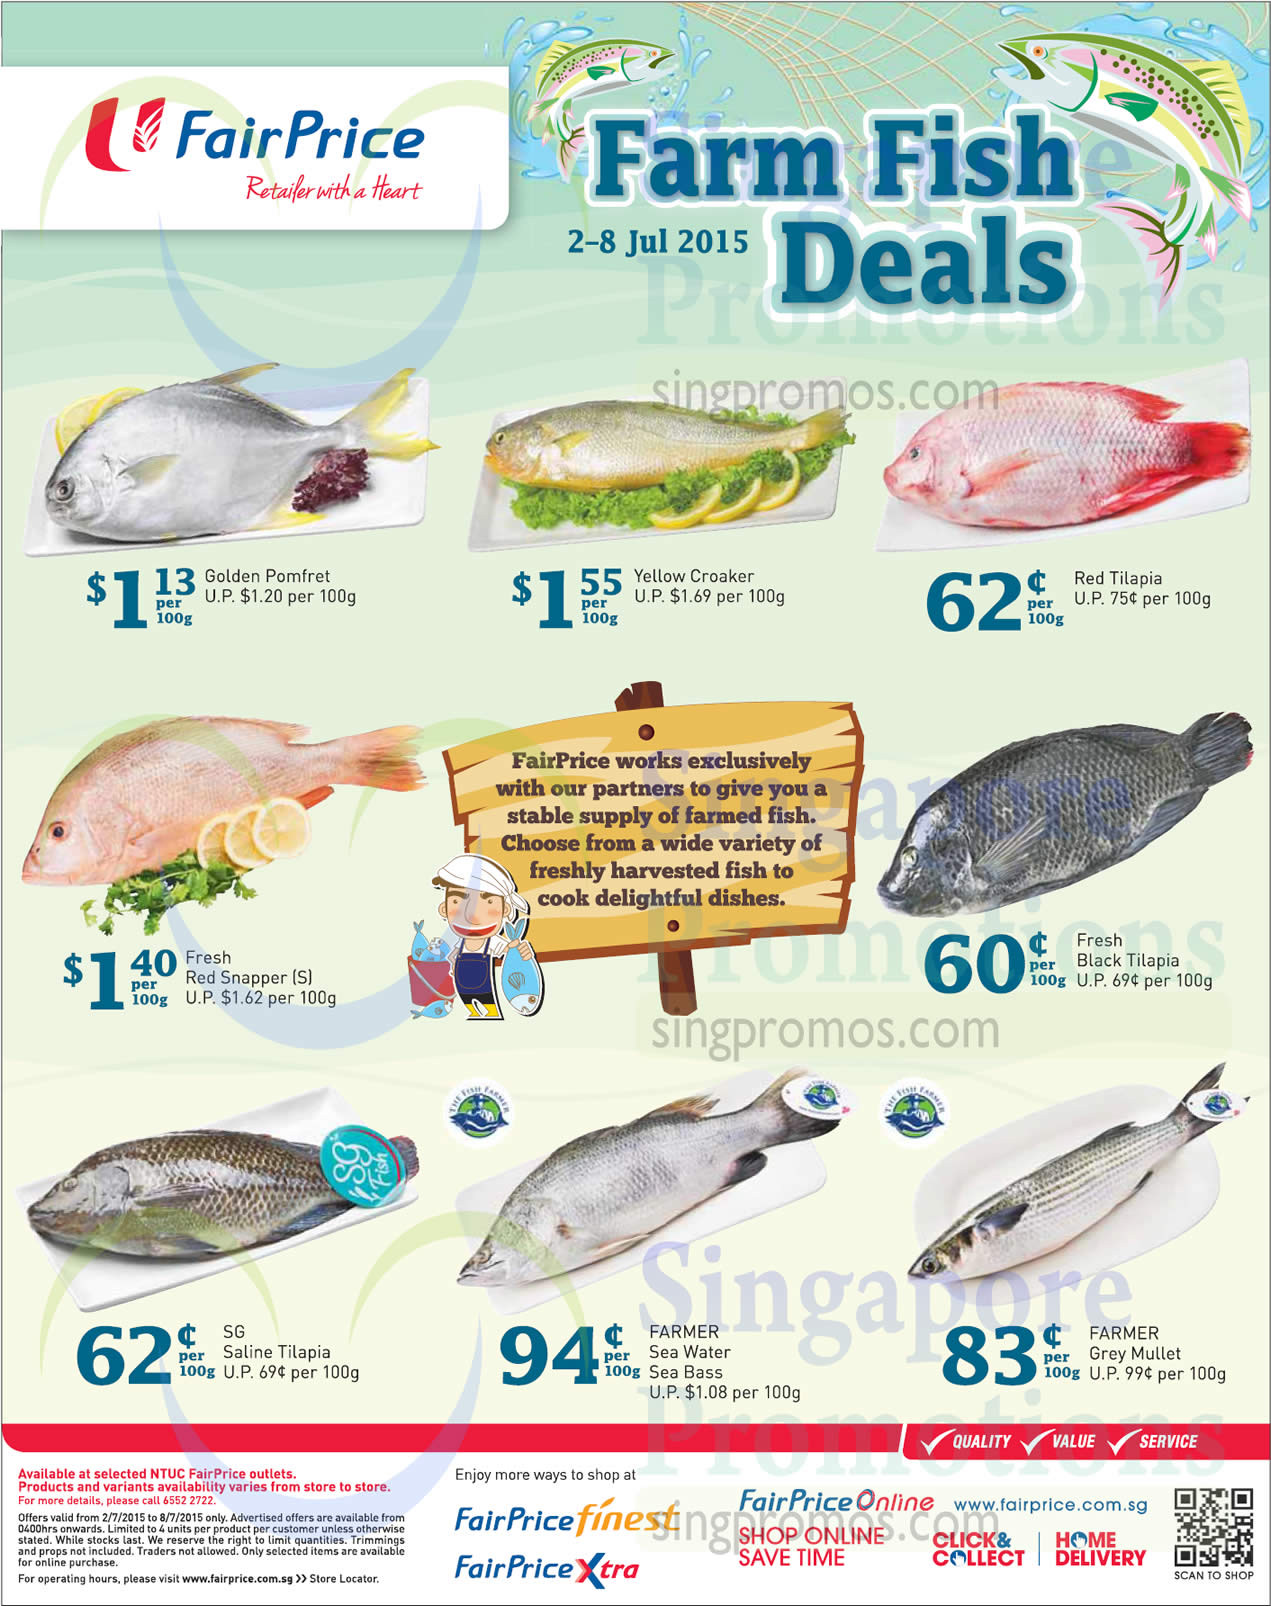 Fish deals pomfret yellow croaker tilapia sea bass for Fishing for deals